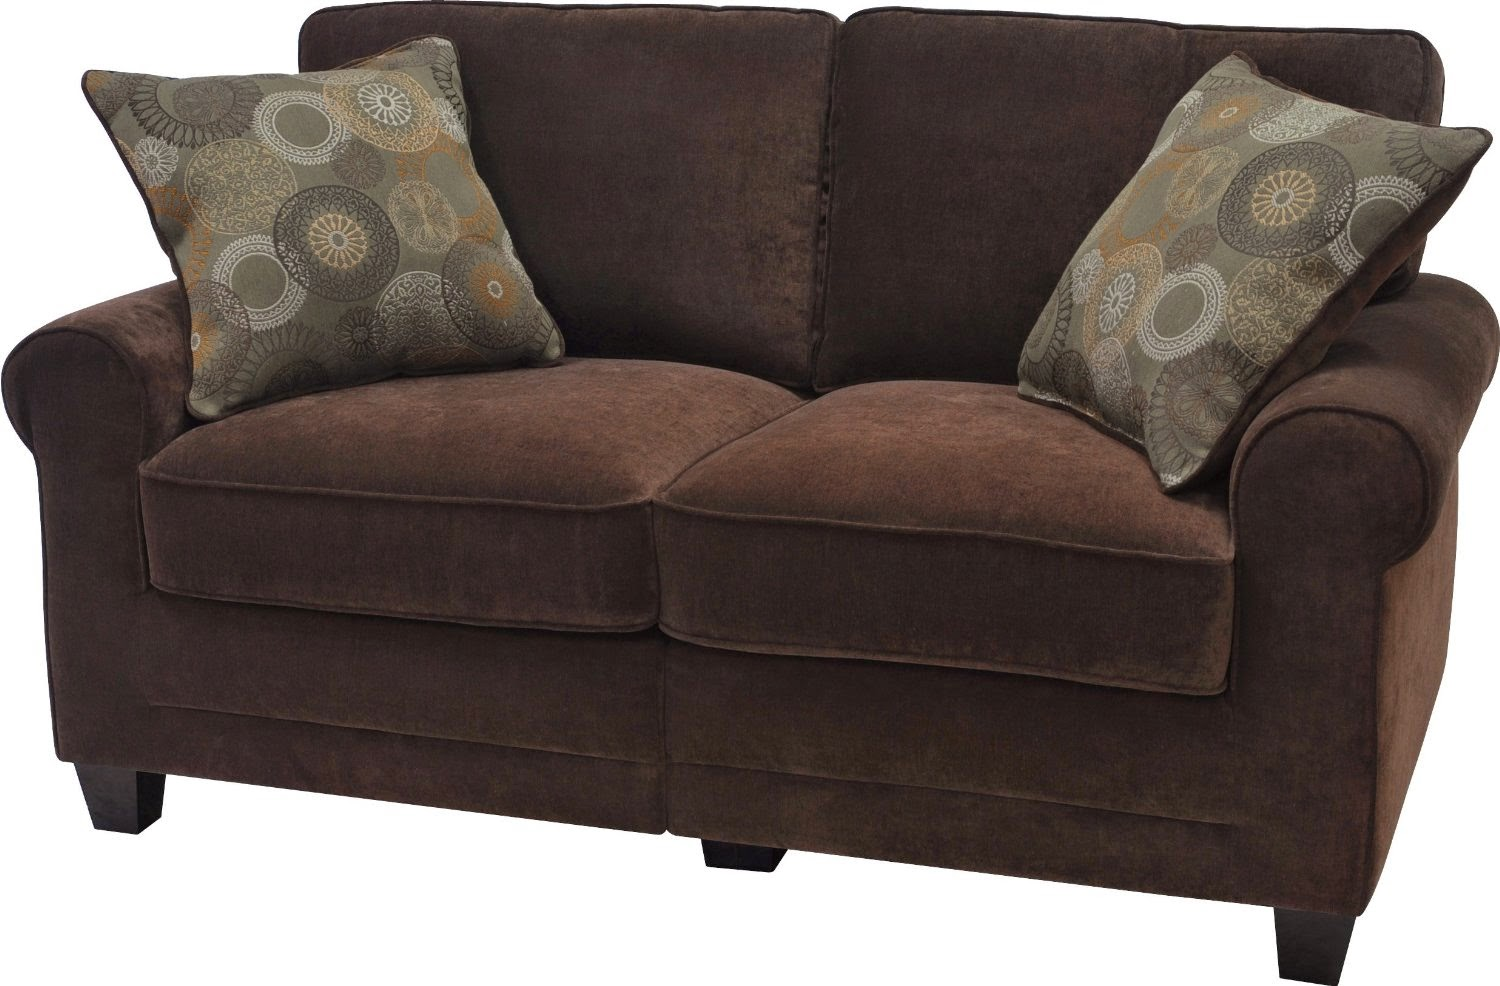 Brown leather couch Loveseats with console